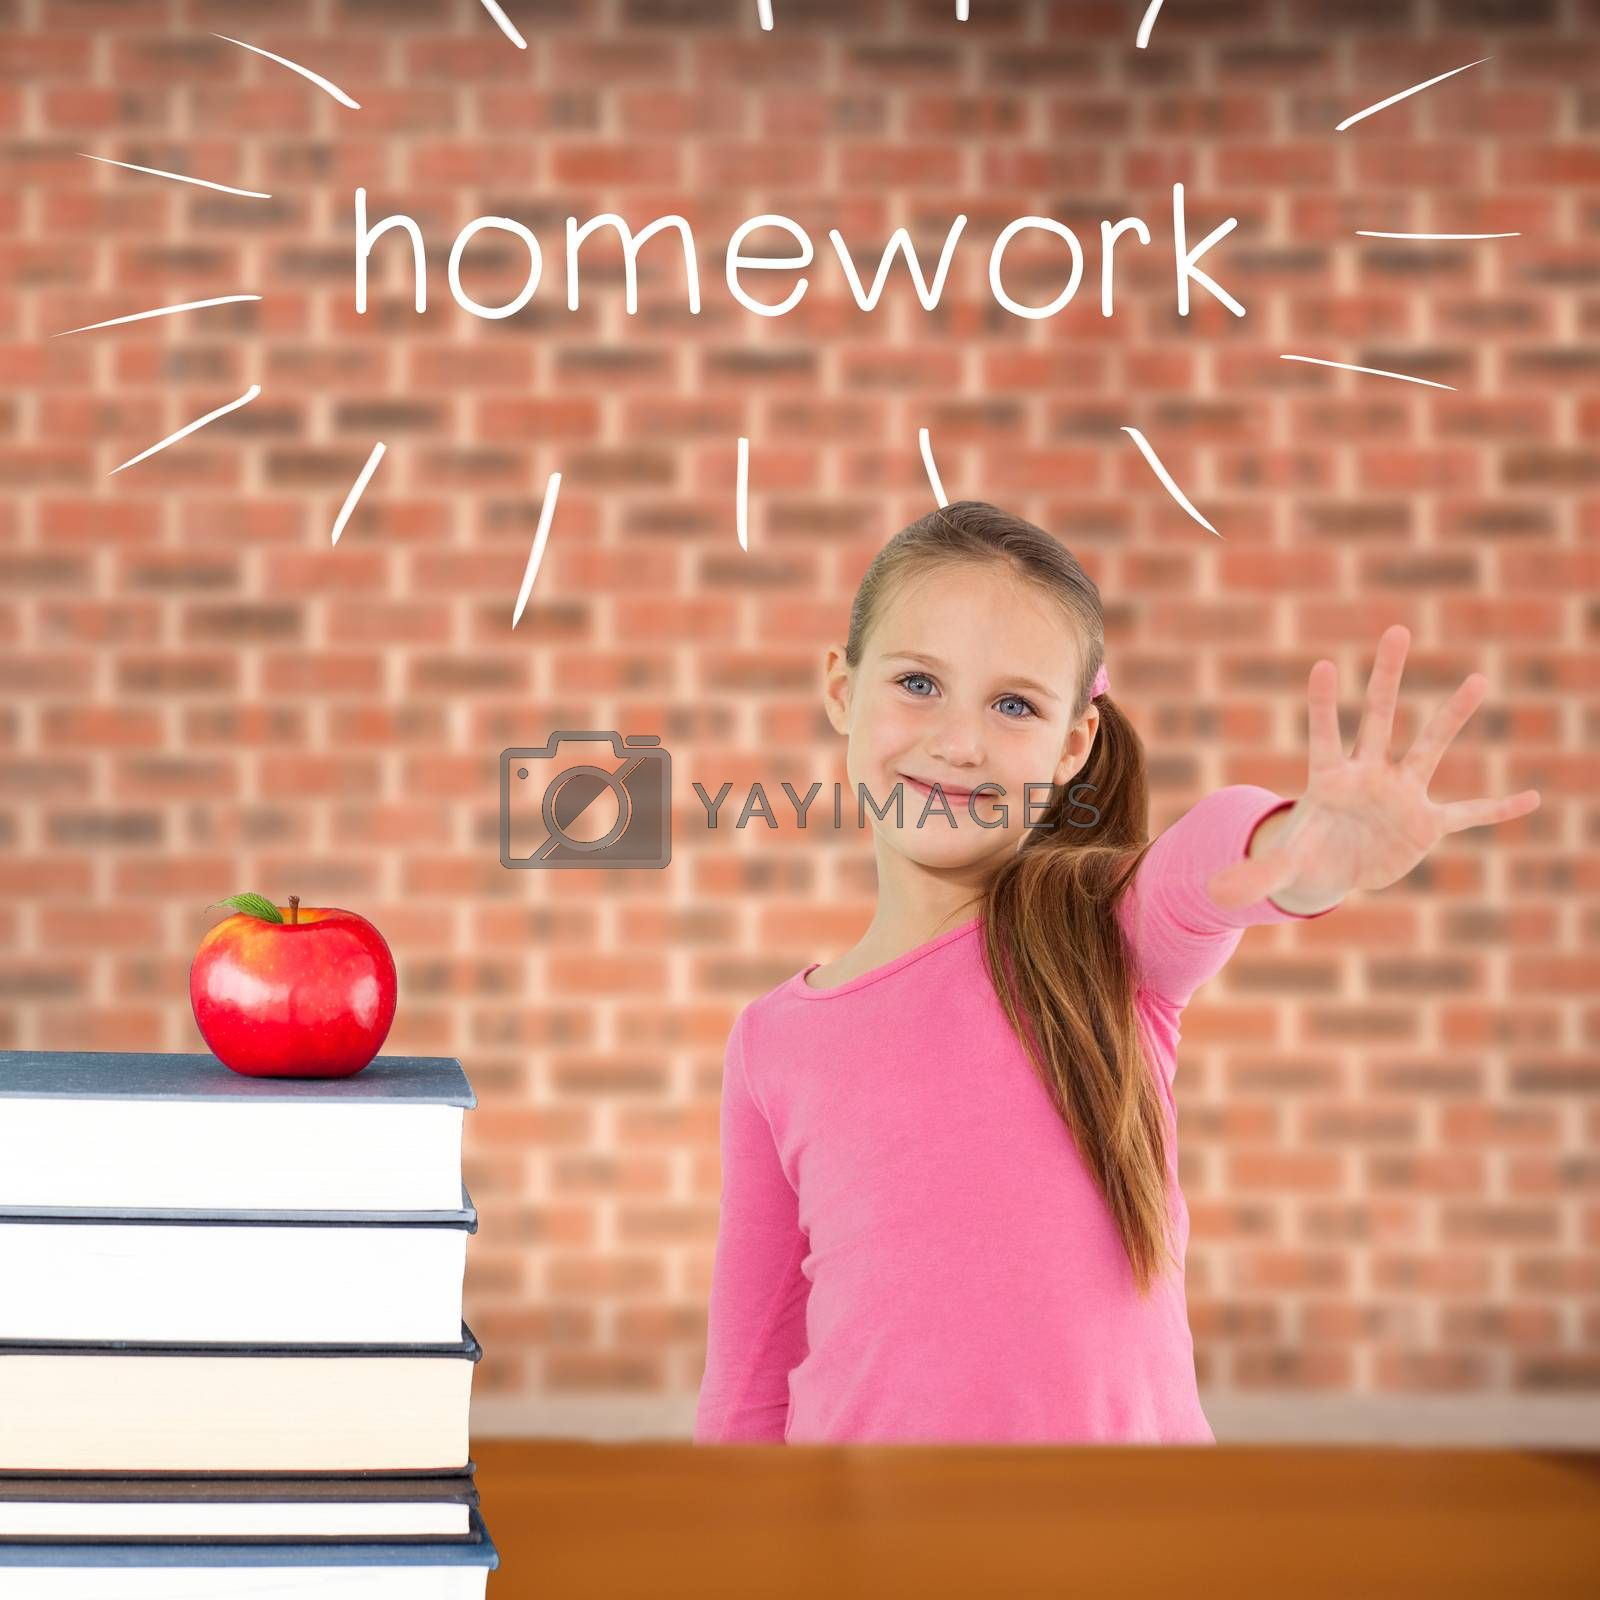 The word homework and cute girl with hand out against red apple on pile of books